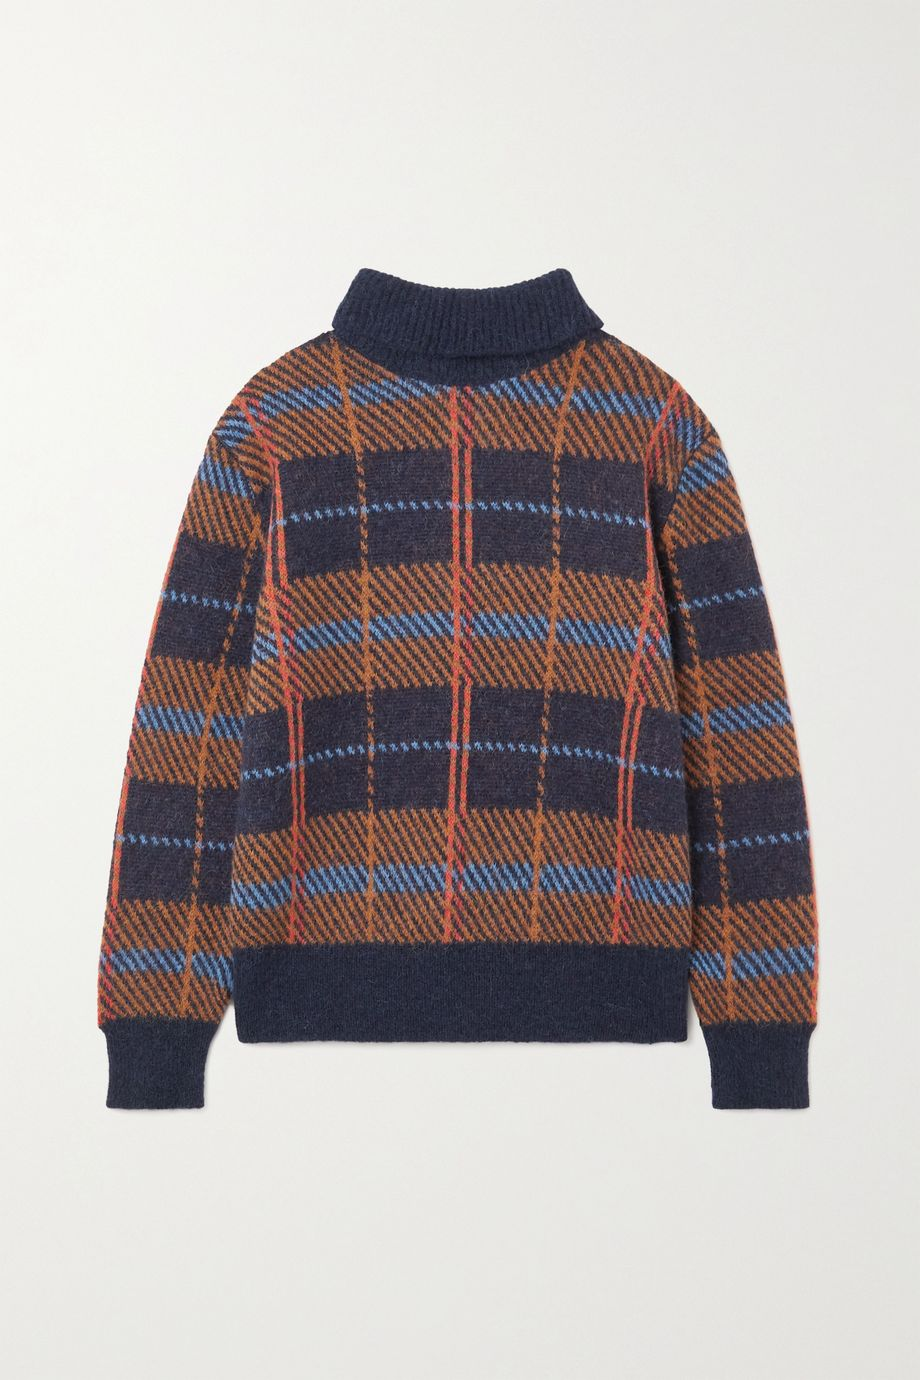 Dries Van Noten Maldives checked alpaca-blend sweater